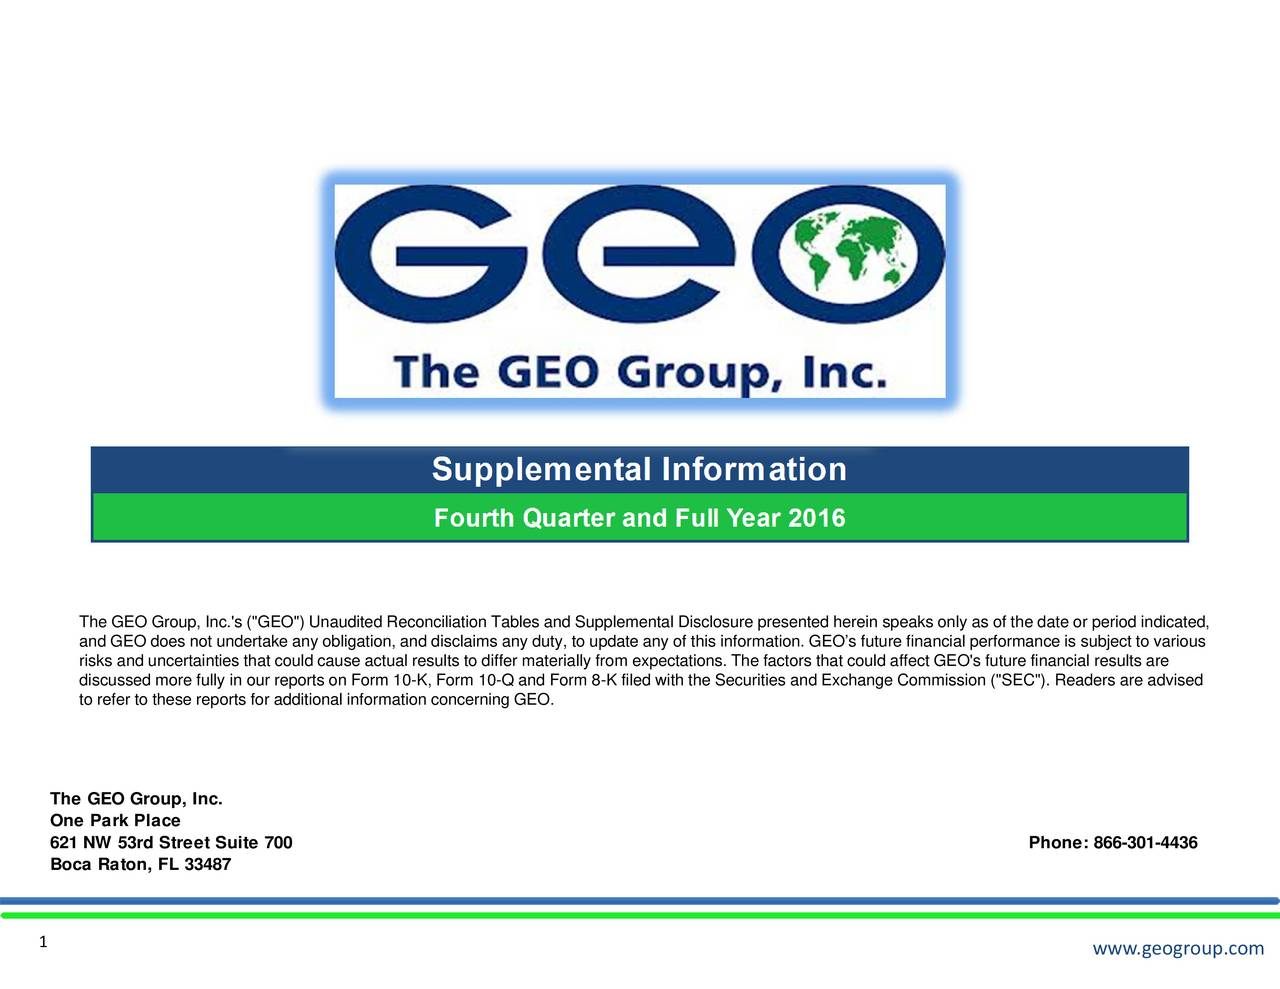 """www.geogroup.com e date oC""""). Readers are advisedone: 866-301- rformance is subject to various O's future financial results are speaks only as of th ure presented herein to update any of this information. GEOs future financial pe Form 8-K filed with the Securities and Exchange Commission (""""SE Reconciliation Tables and Supplemental Disclos Theand GEO does not undertake any obligation, and disclaims any duty,riEly.from expectations. The factors that could affect GE TheOnGe2Boca Raton, FL 33487 Suite 700 1"""